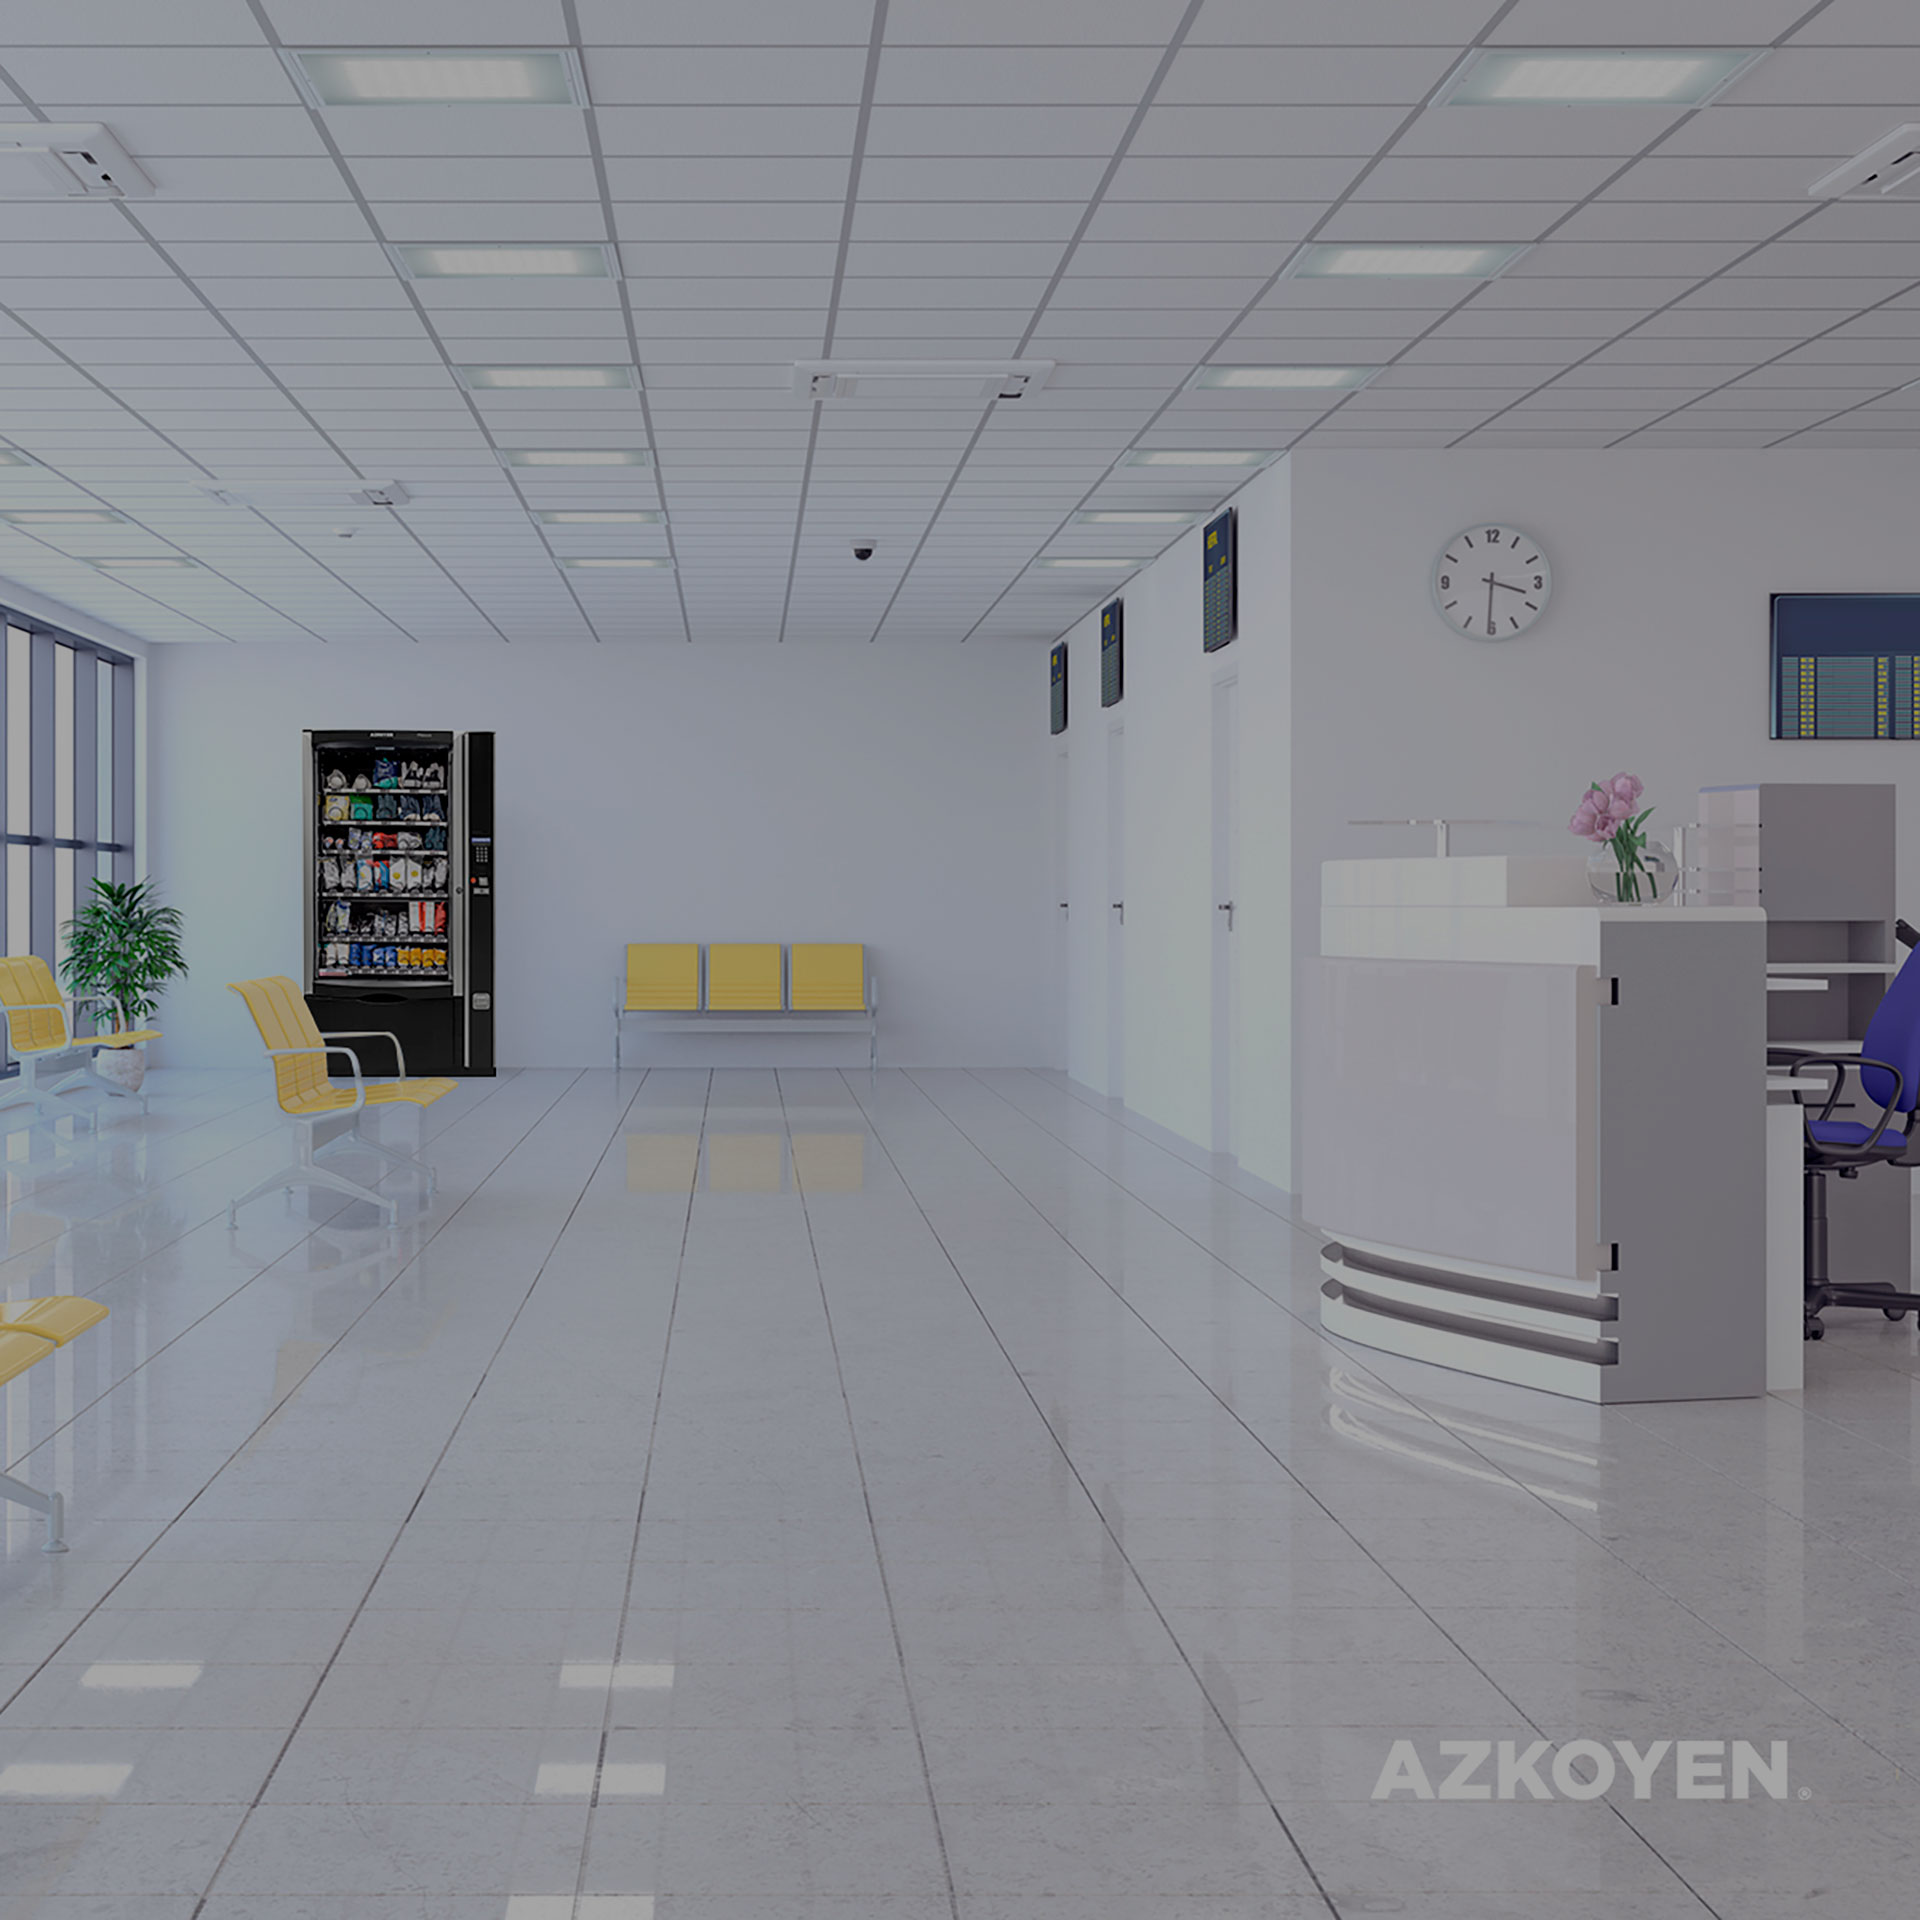 Azkoyen is working to distribute free PPE using its automatic machines